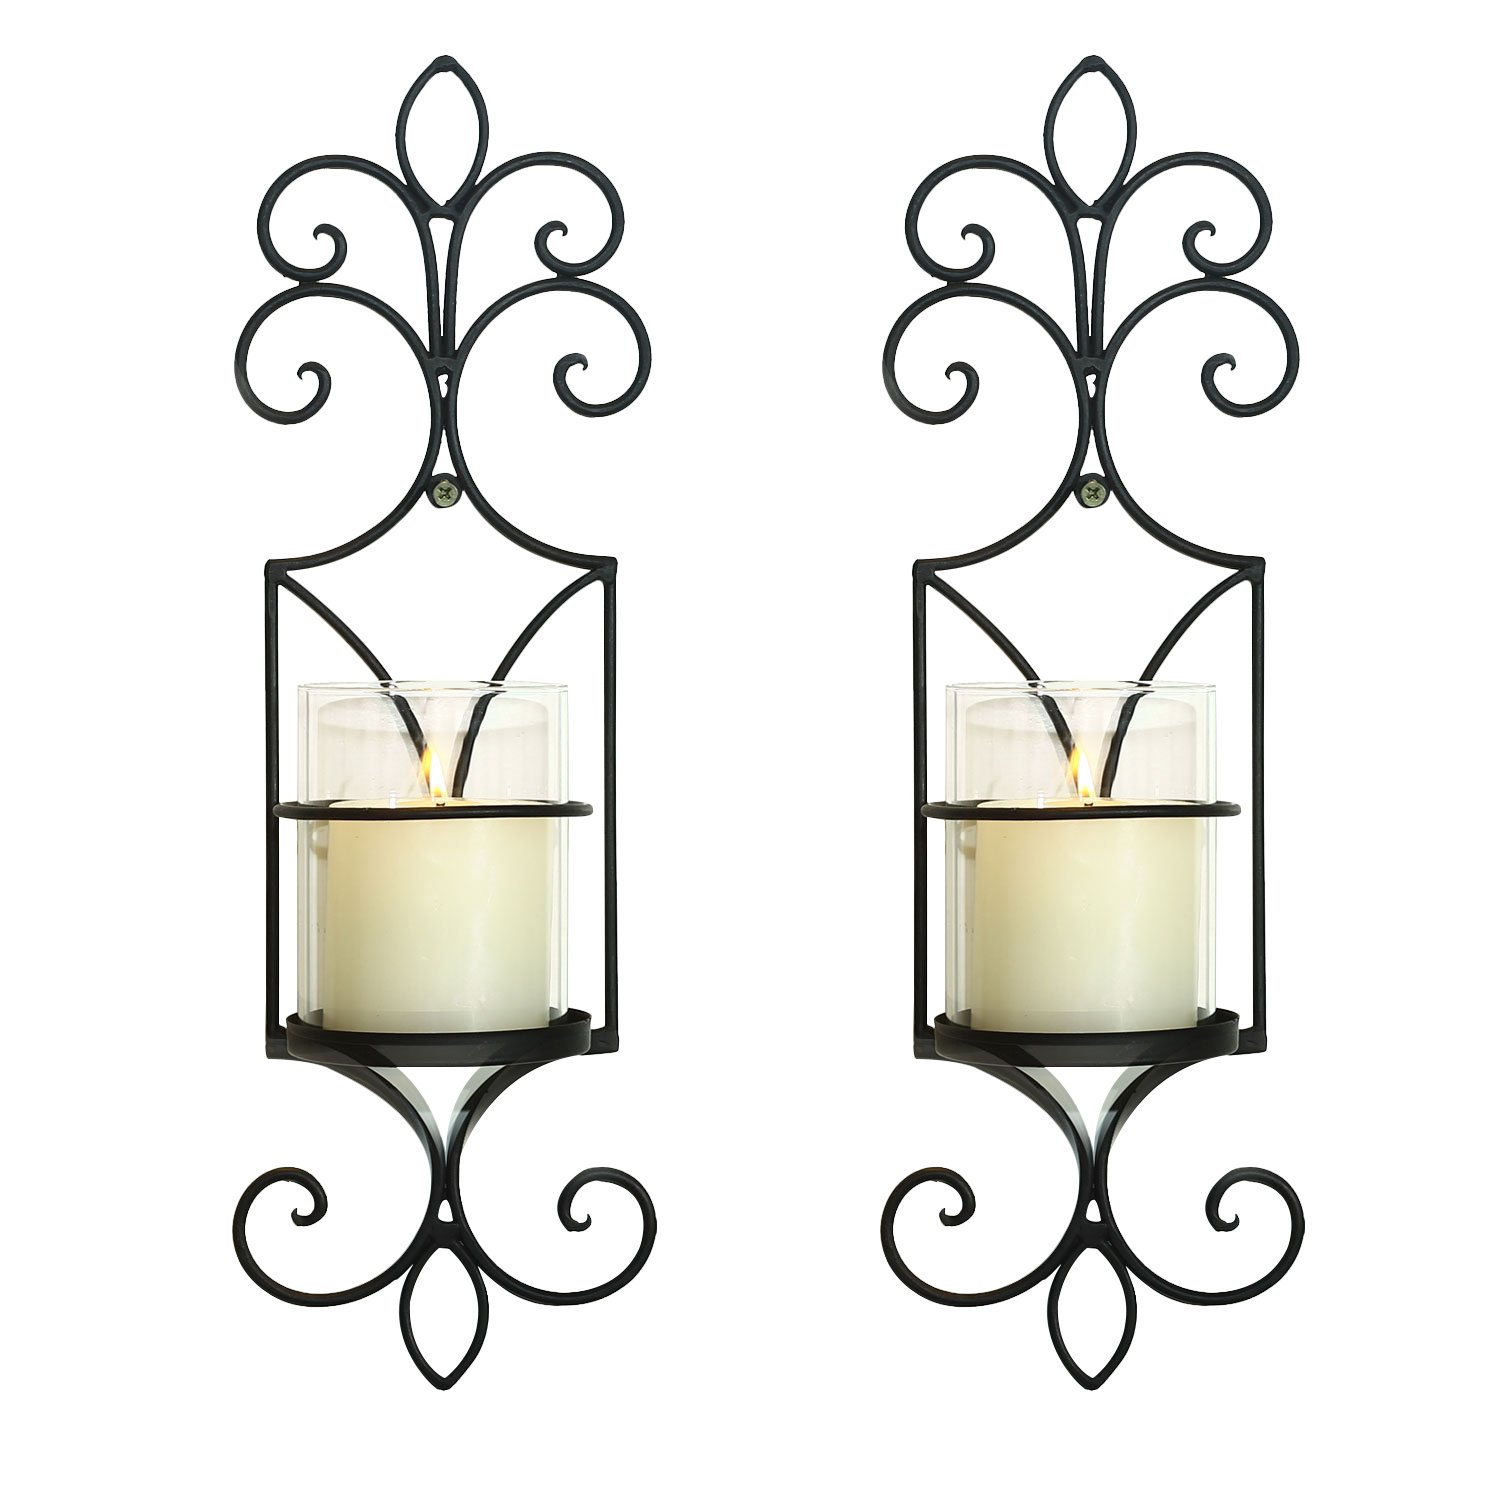 Homebeez Deorative Iron Vertical Candle Holder Sconce (Set of Two),Black Color With Antique Finish HBHD0019